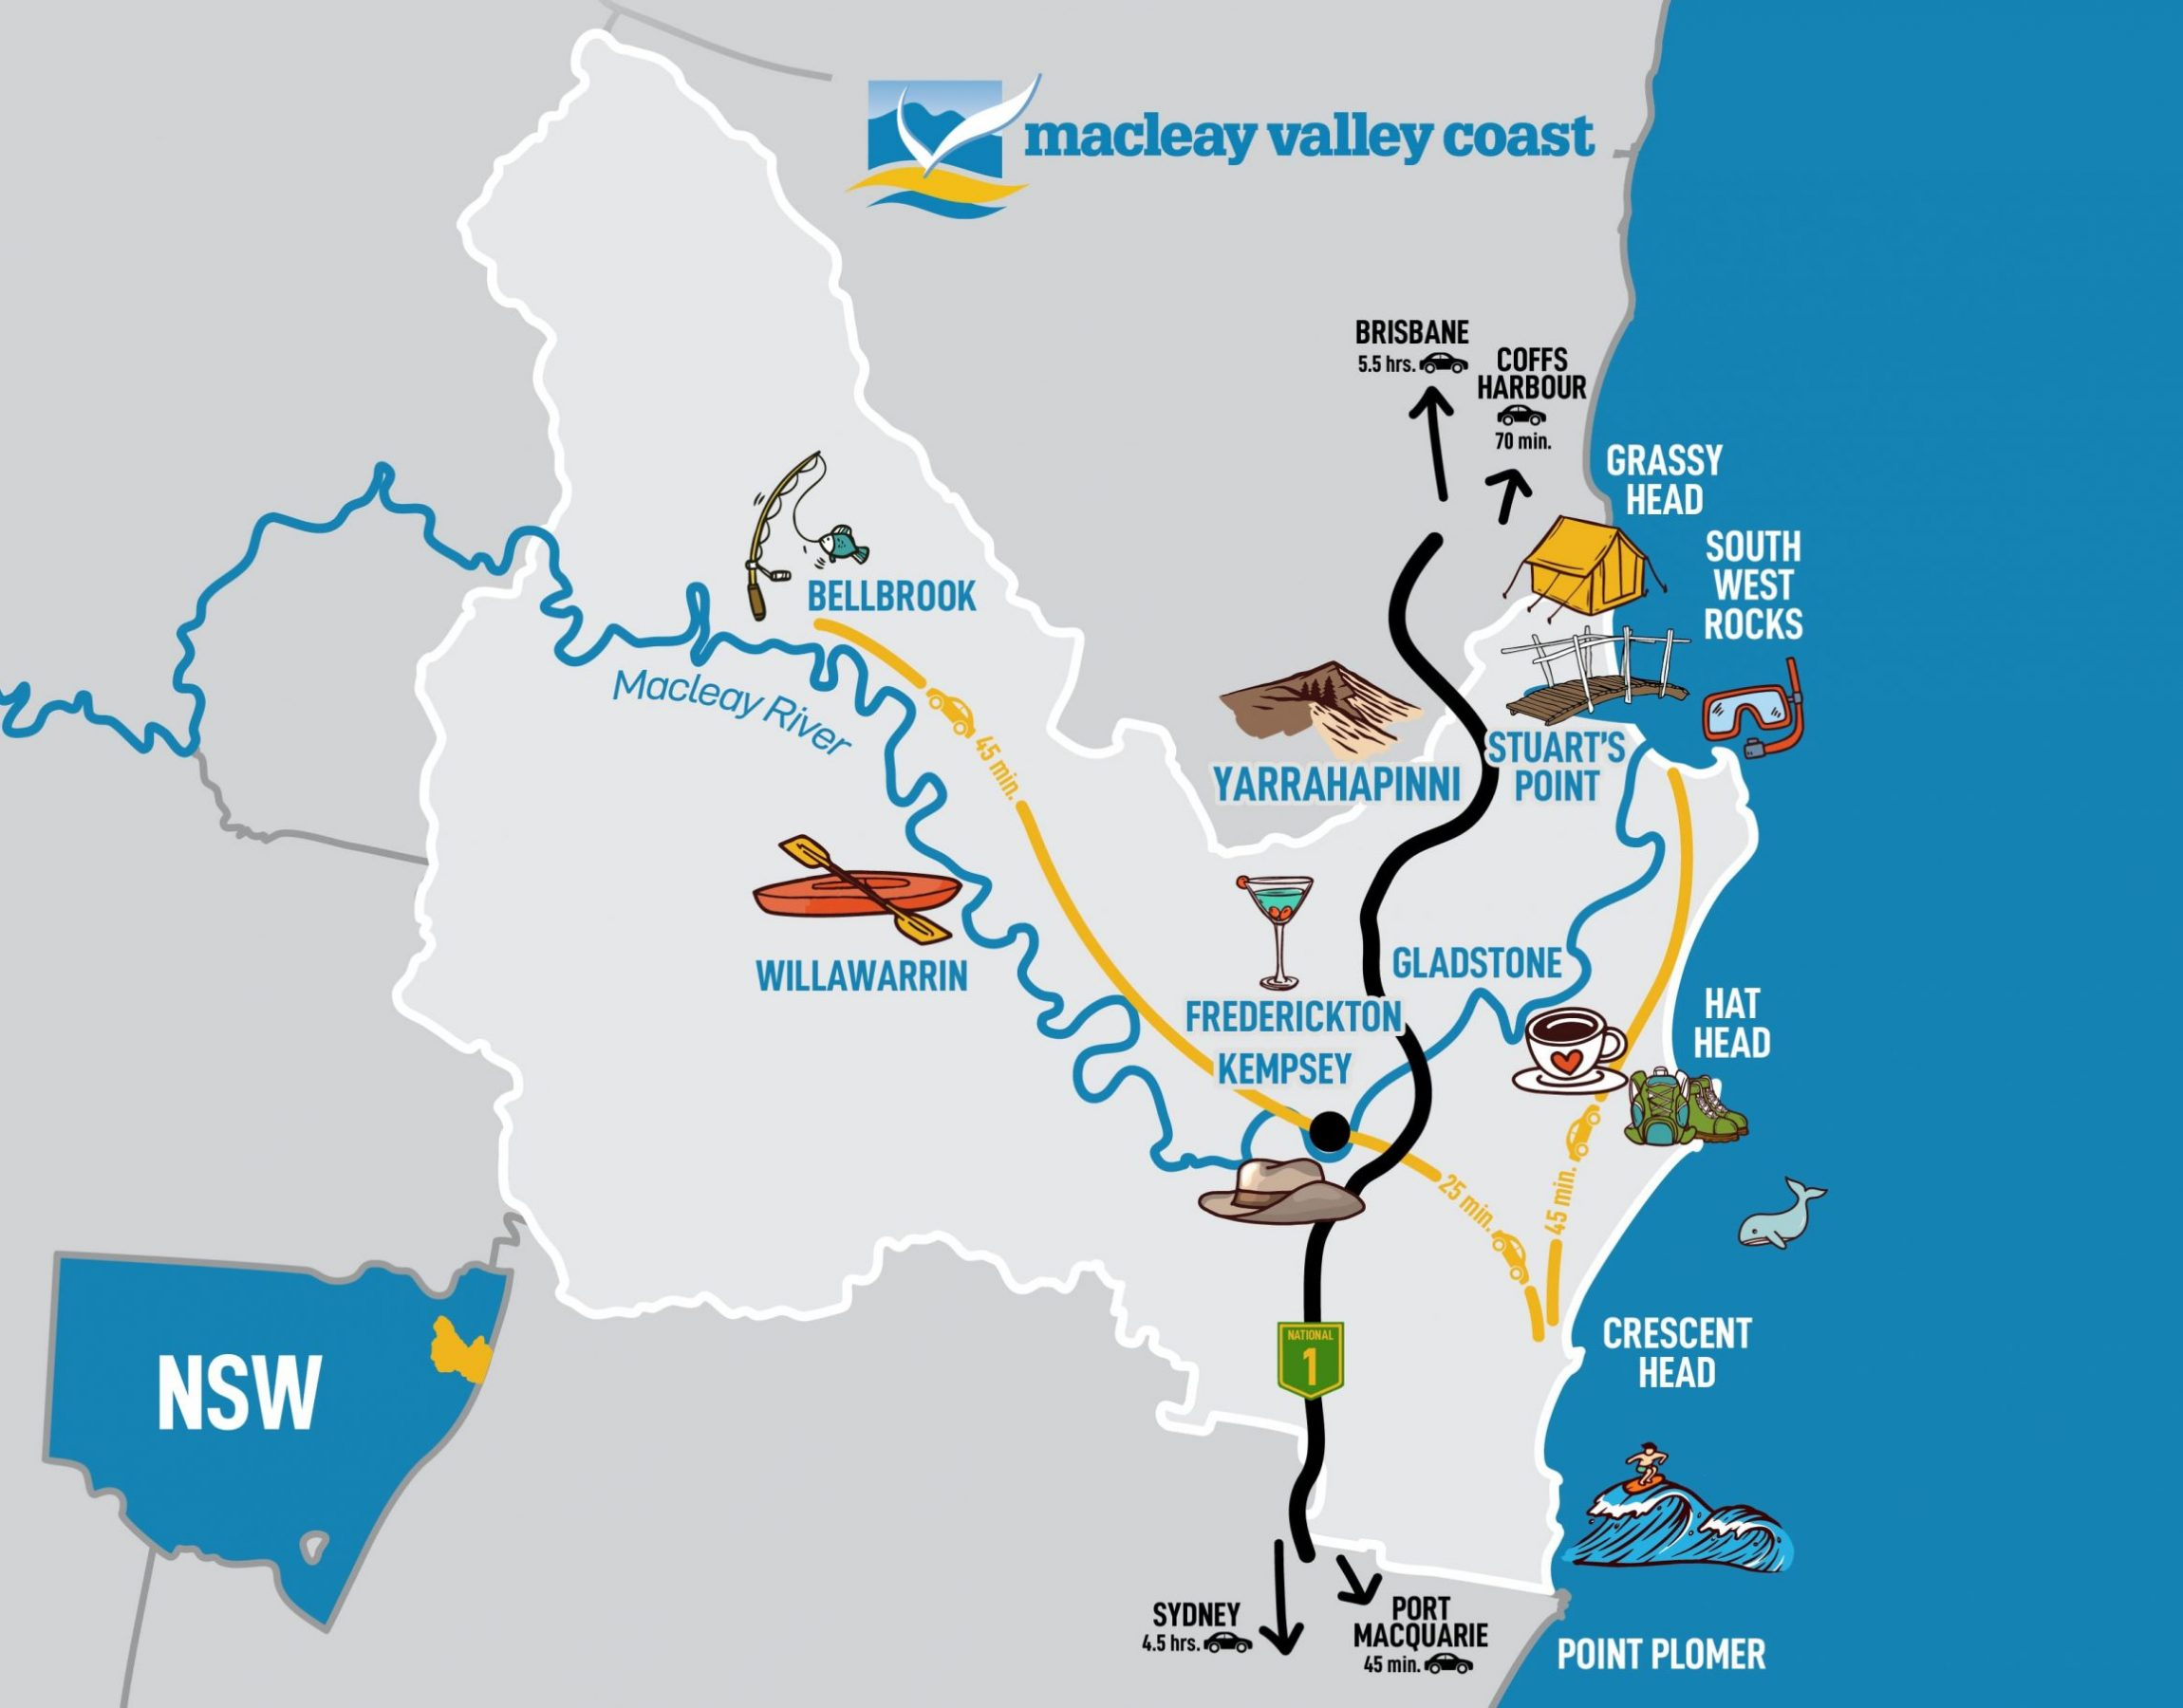 Macleay Valley Coast map_A4_landscape_2020-01